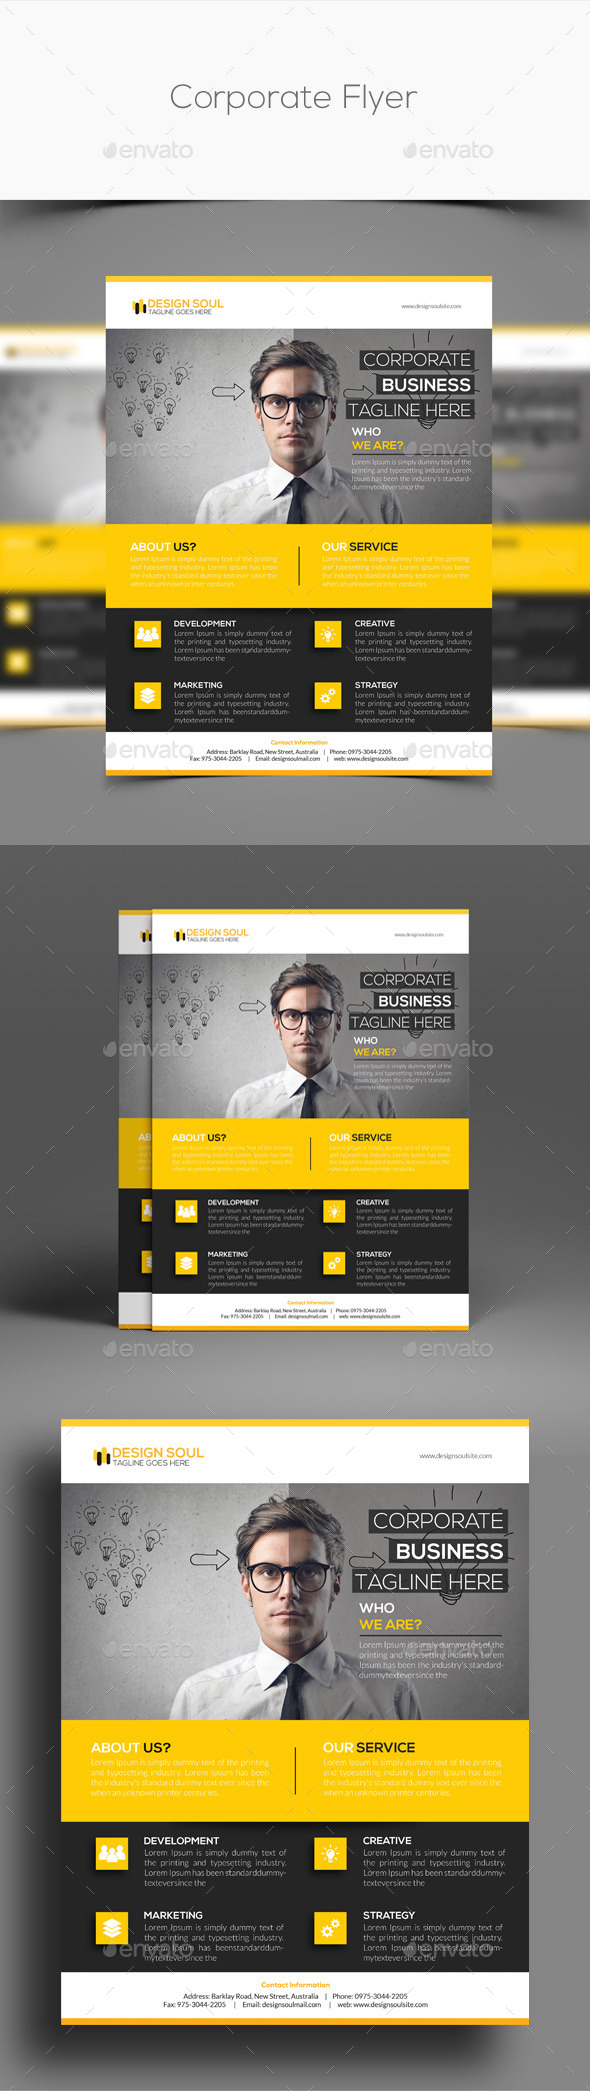 GraphicRiver Corporate Flyer 11104567